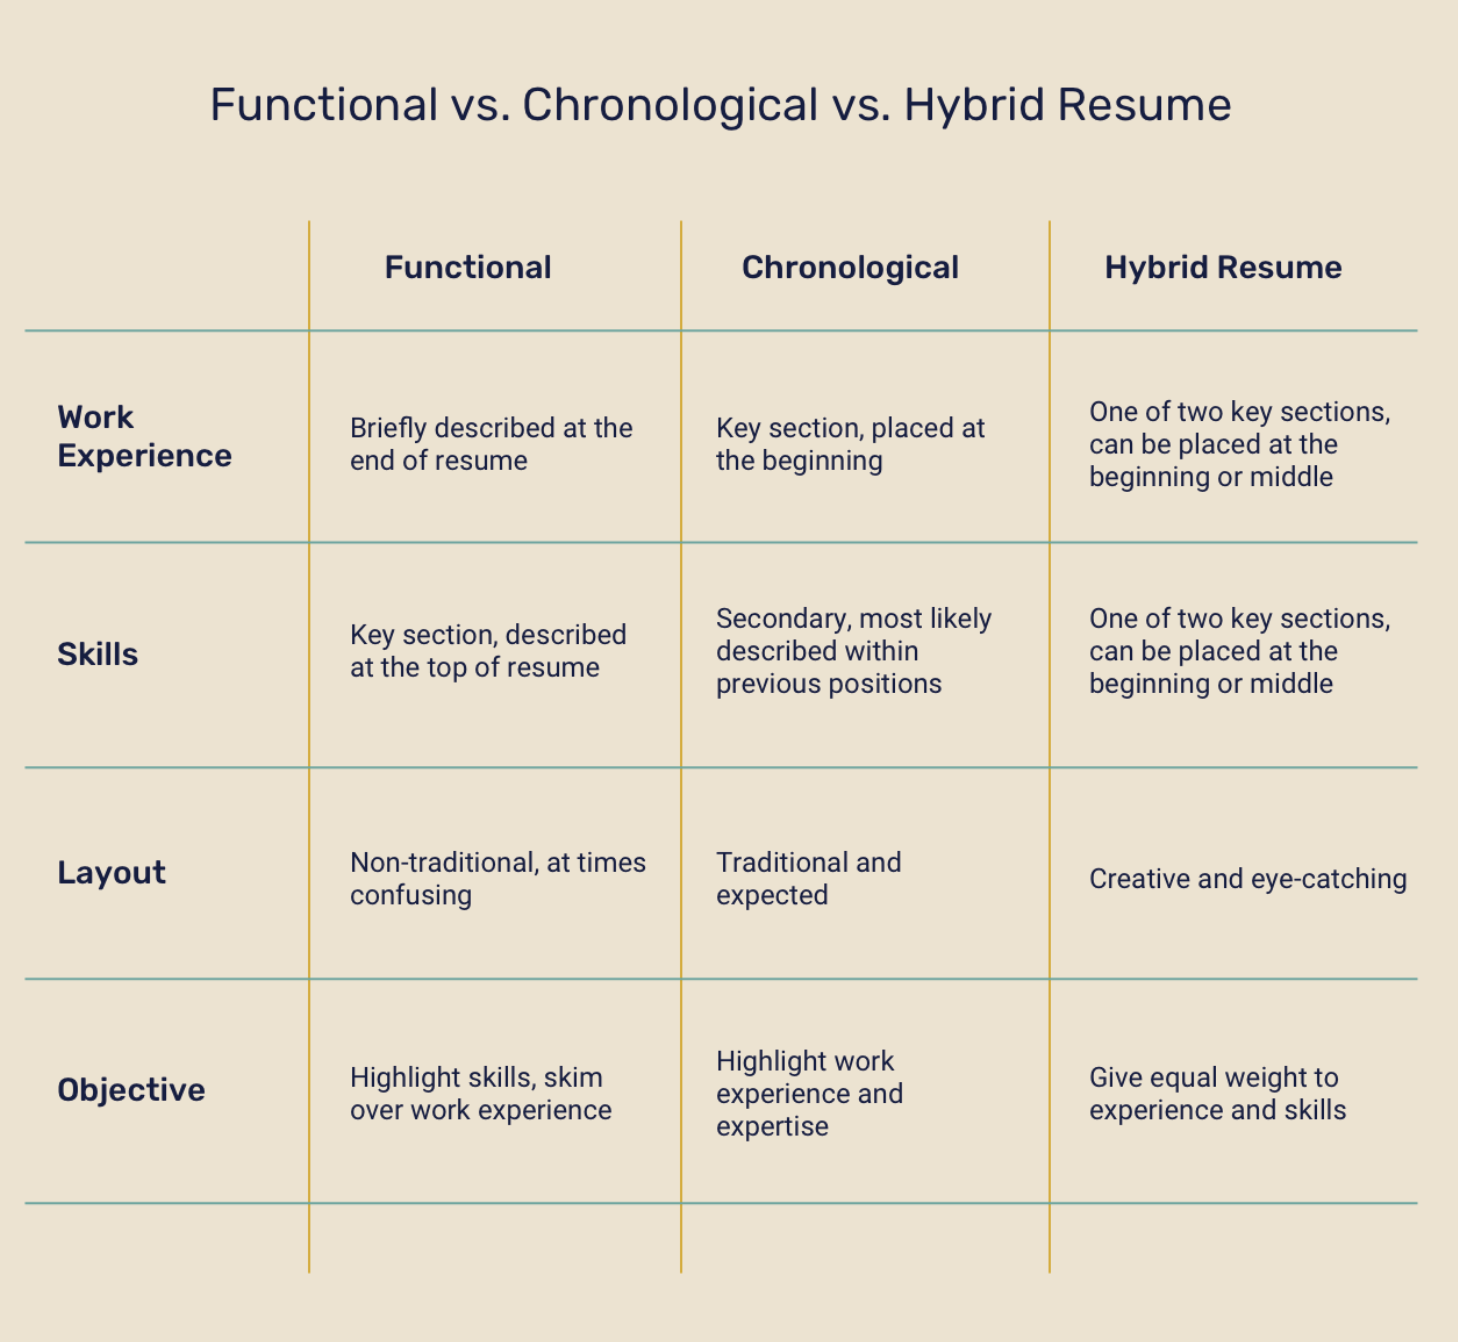 difference between functional hybrid resume